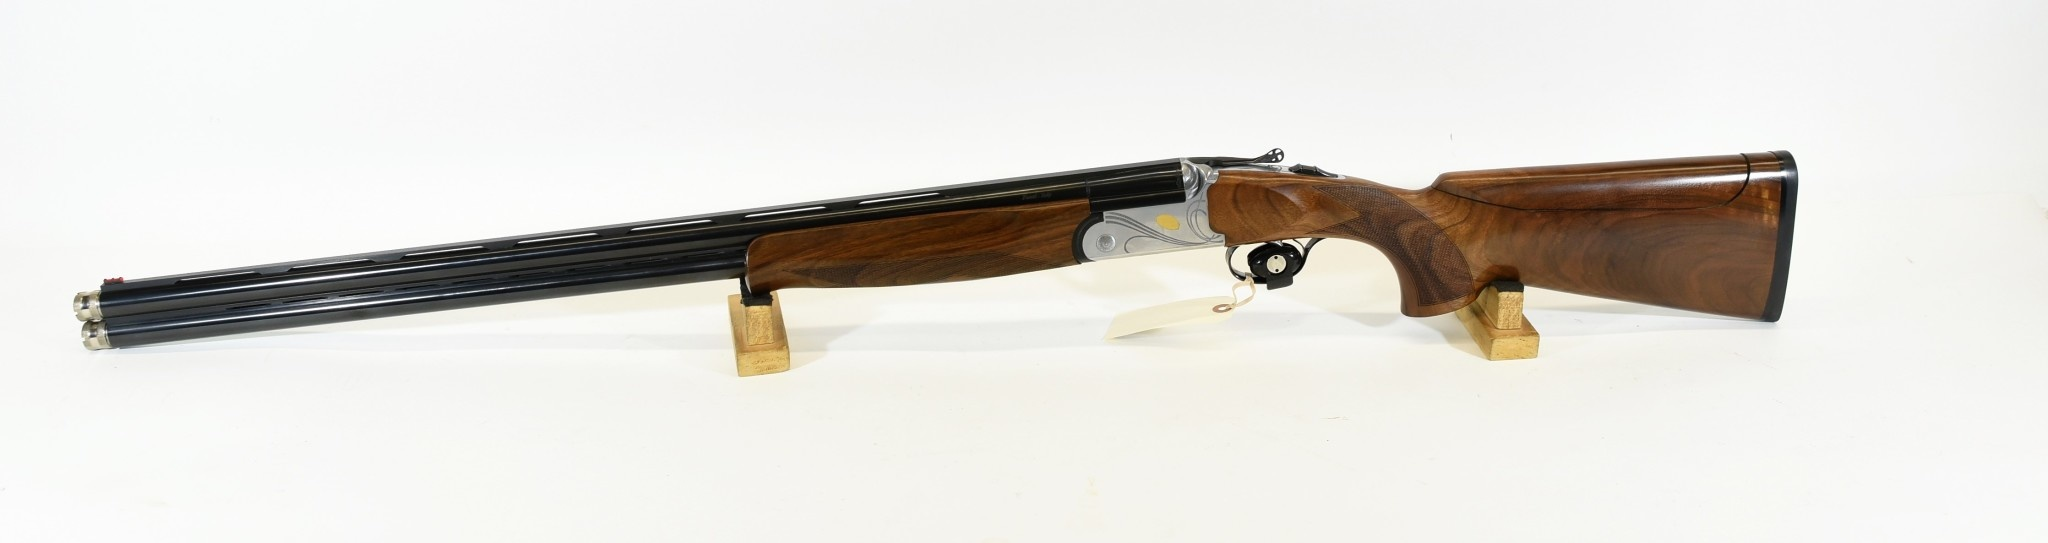 "UG-12636 USED Fausti Conrad Sporting w/ Adjustable Comb 12 Gauge 3"" 30"" Barrels w/ 5 Extended Choke Tubes (very little use!"